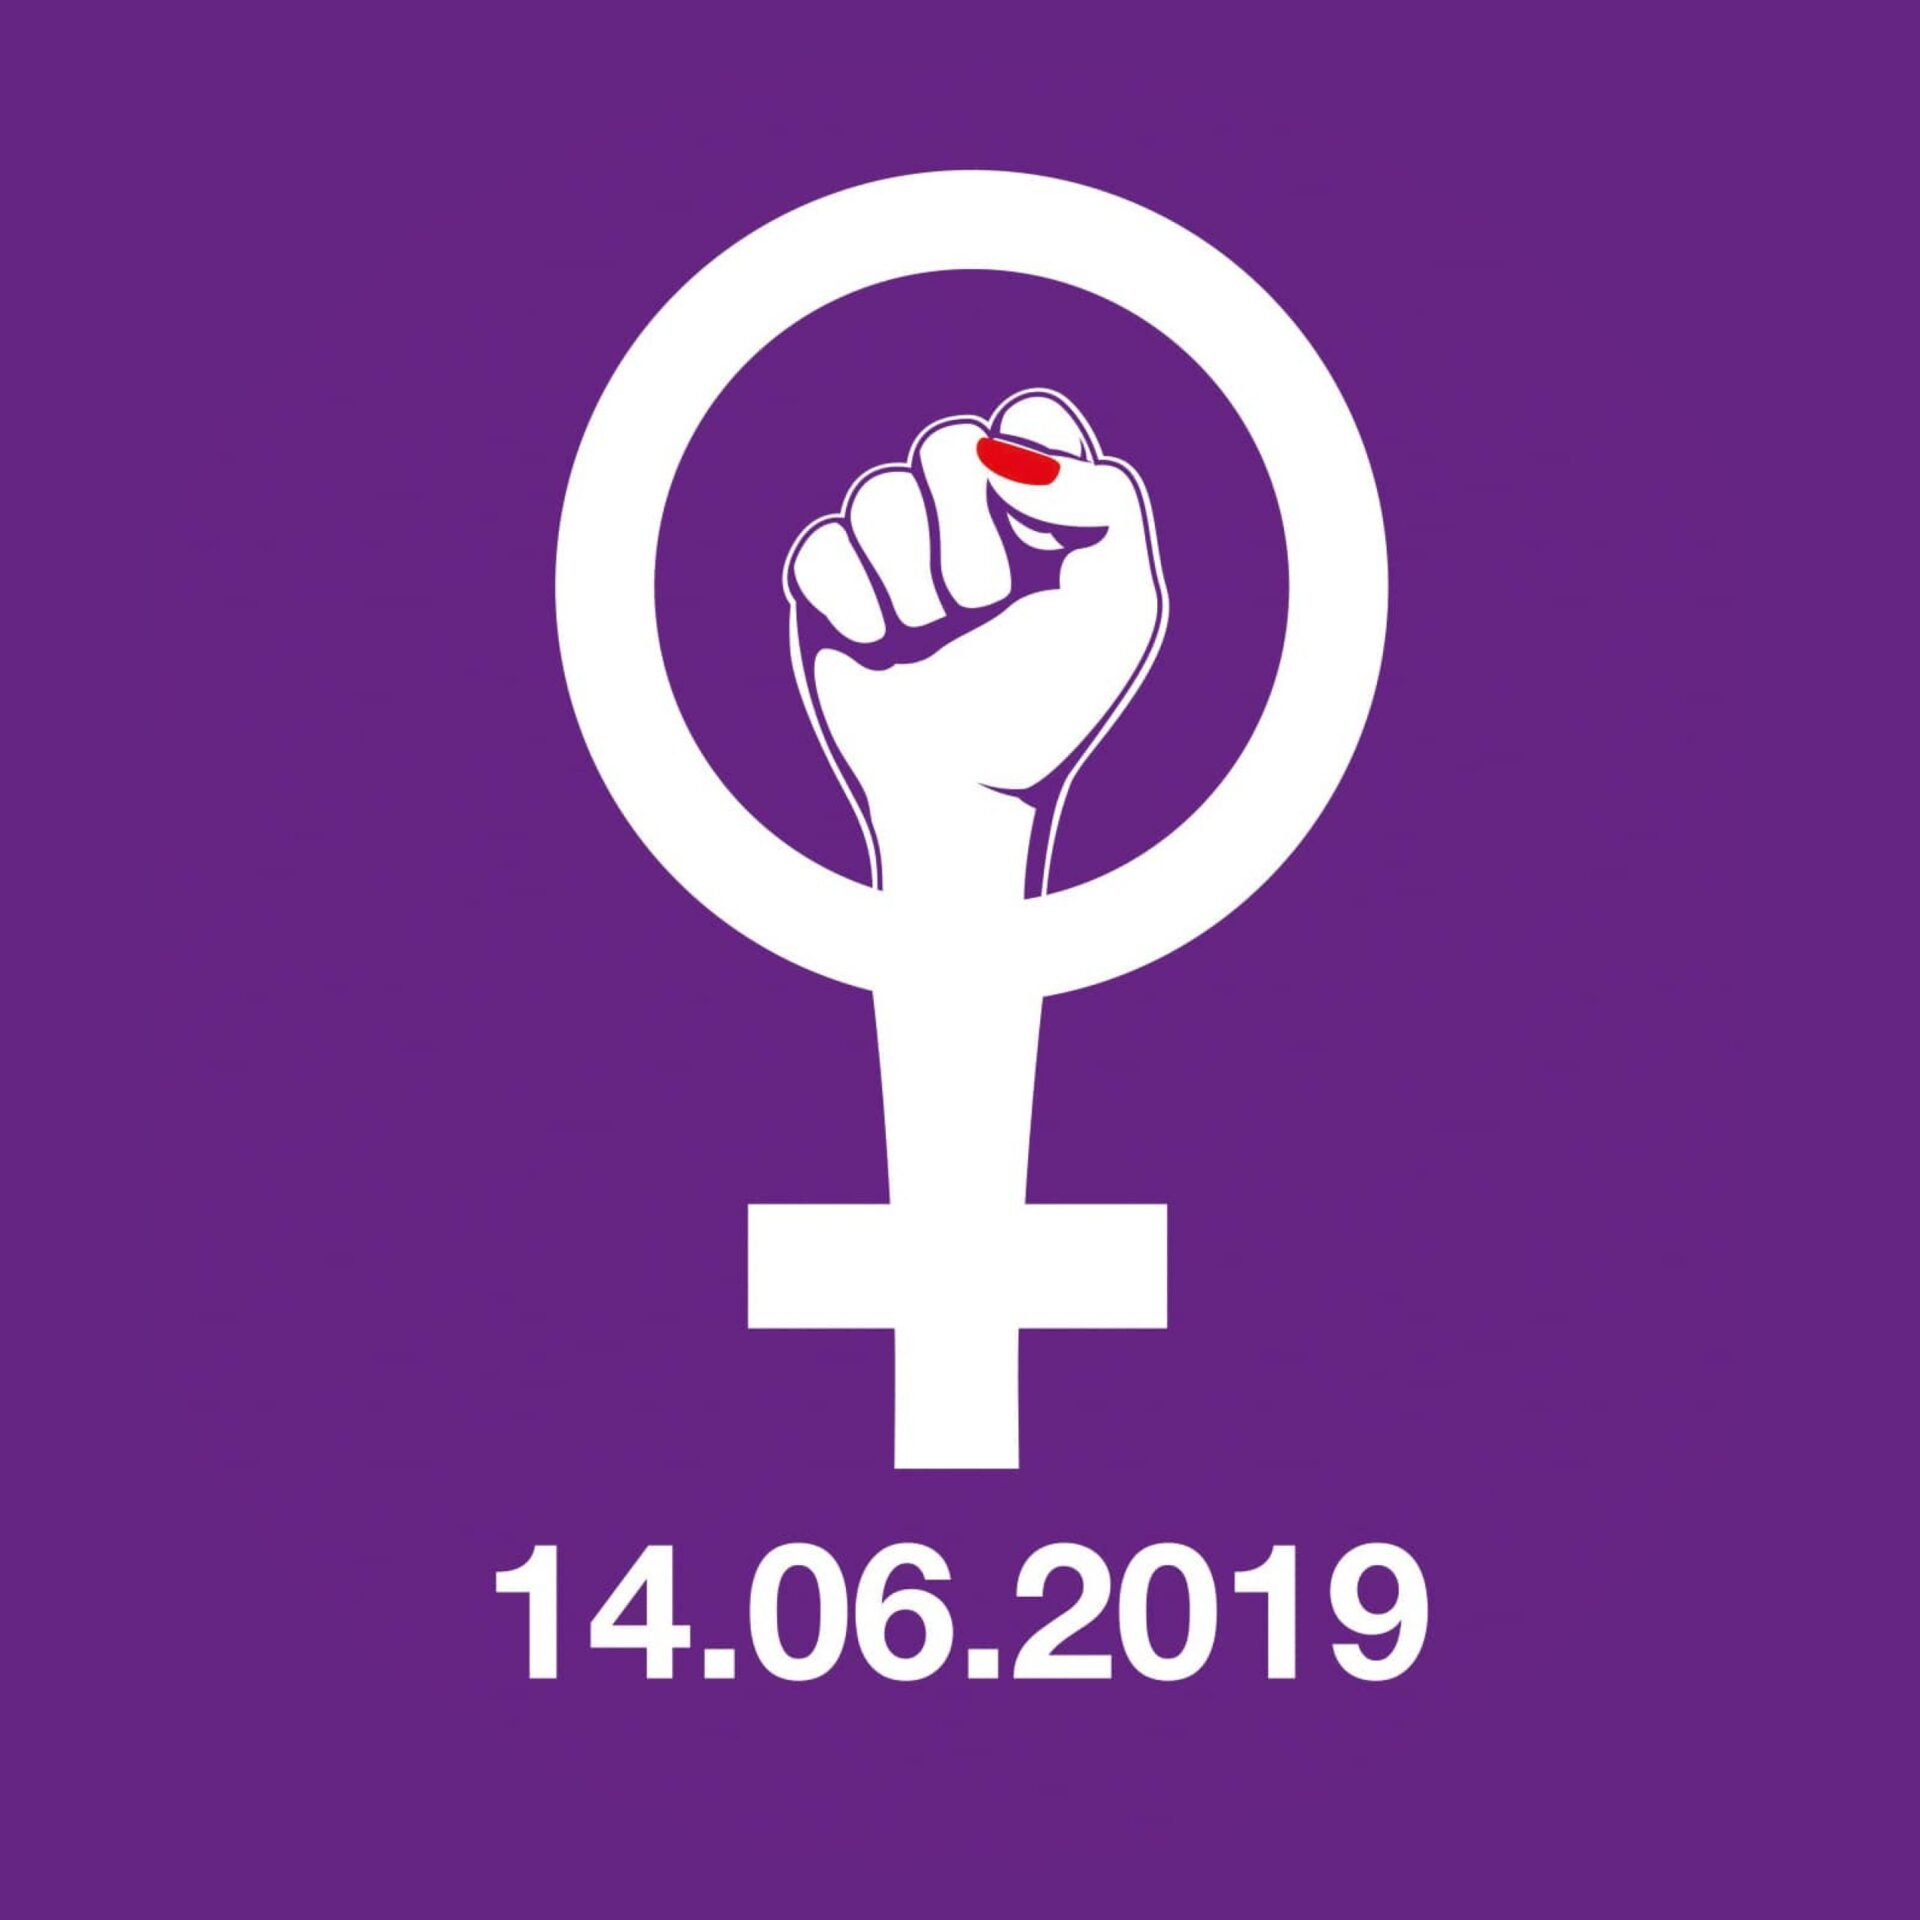 Women's strike 14.6. Fist logo on purple background